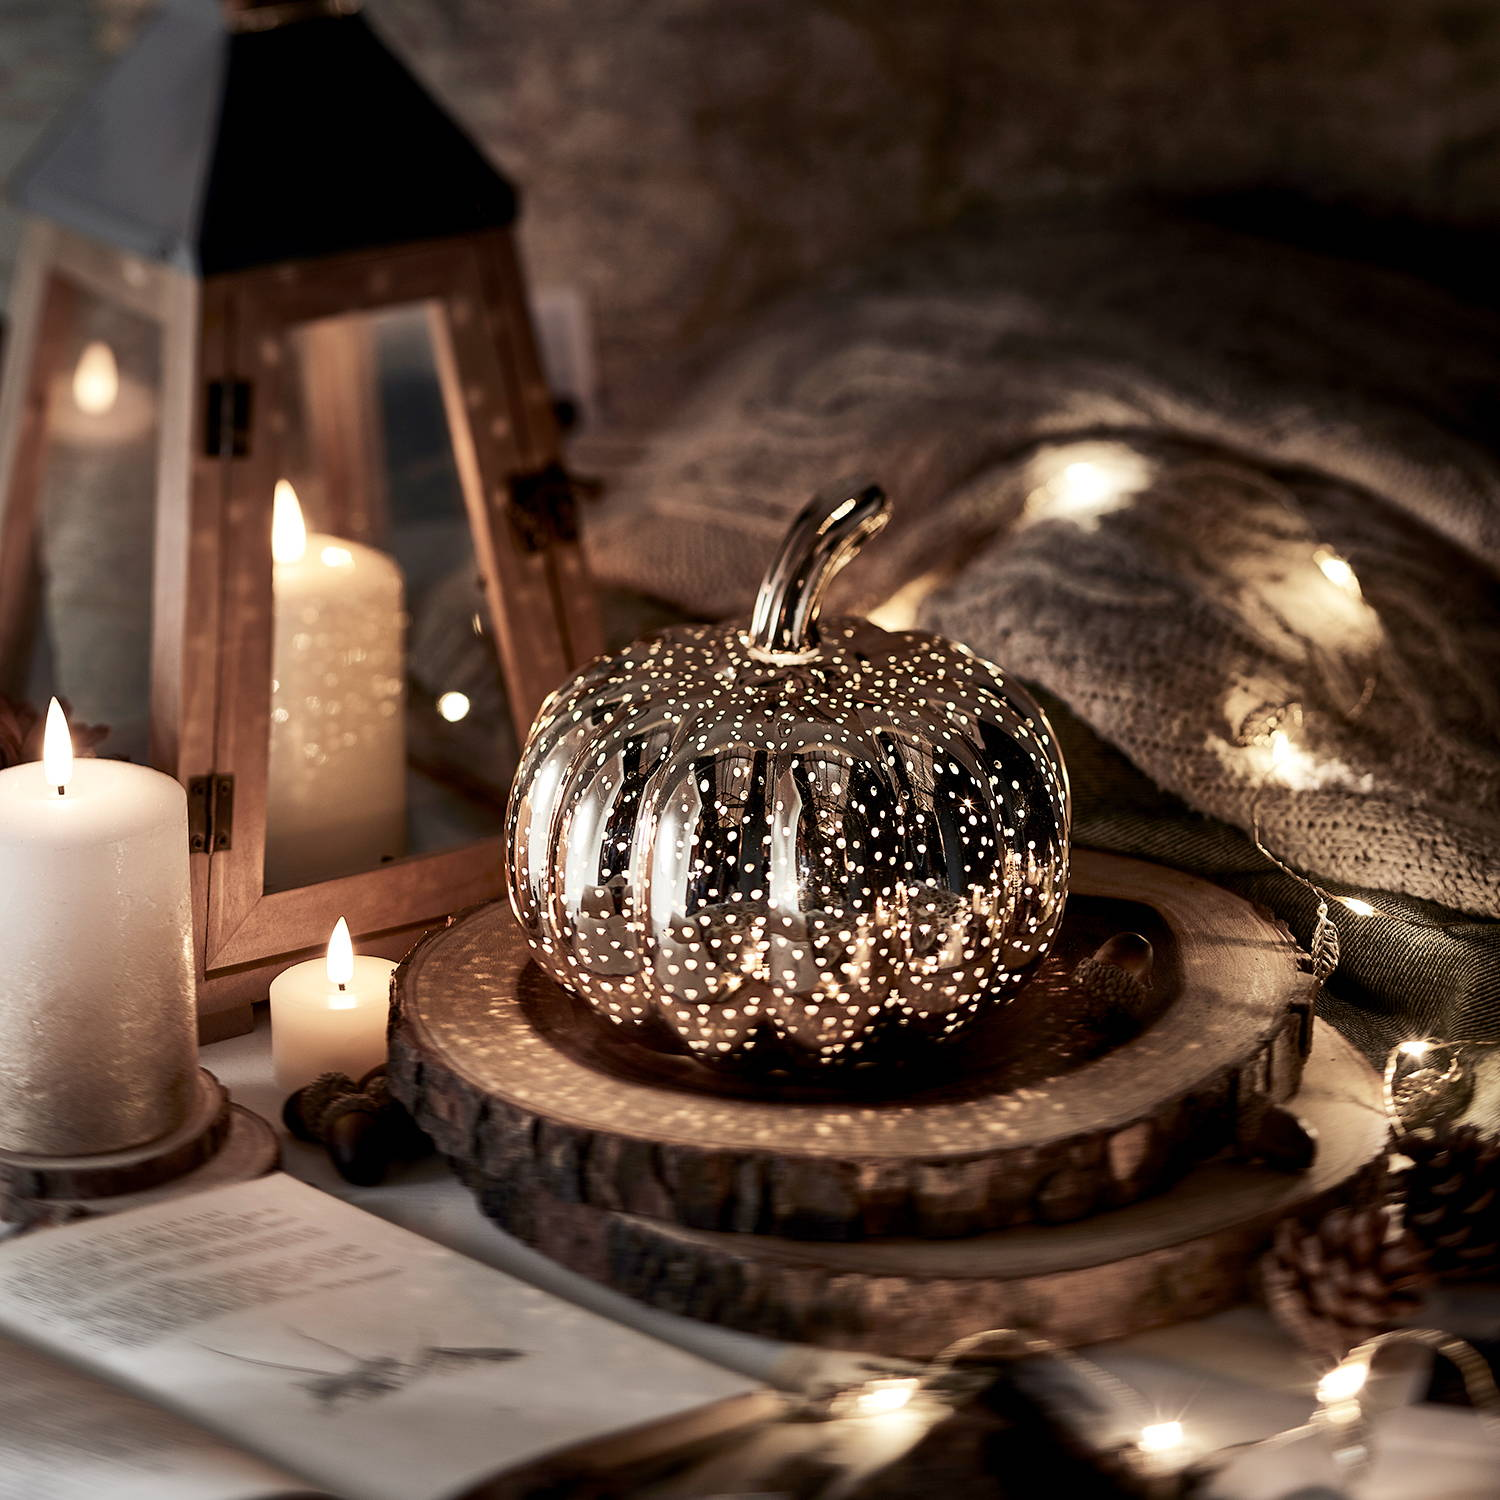 Mottled rose gold pumpkin with illuminate candles and indoor lantern on table